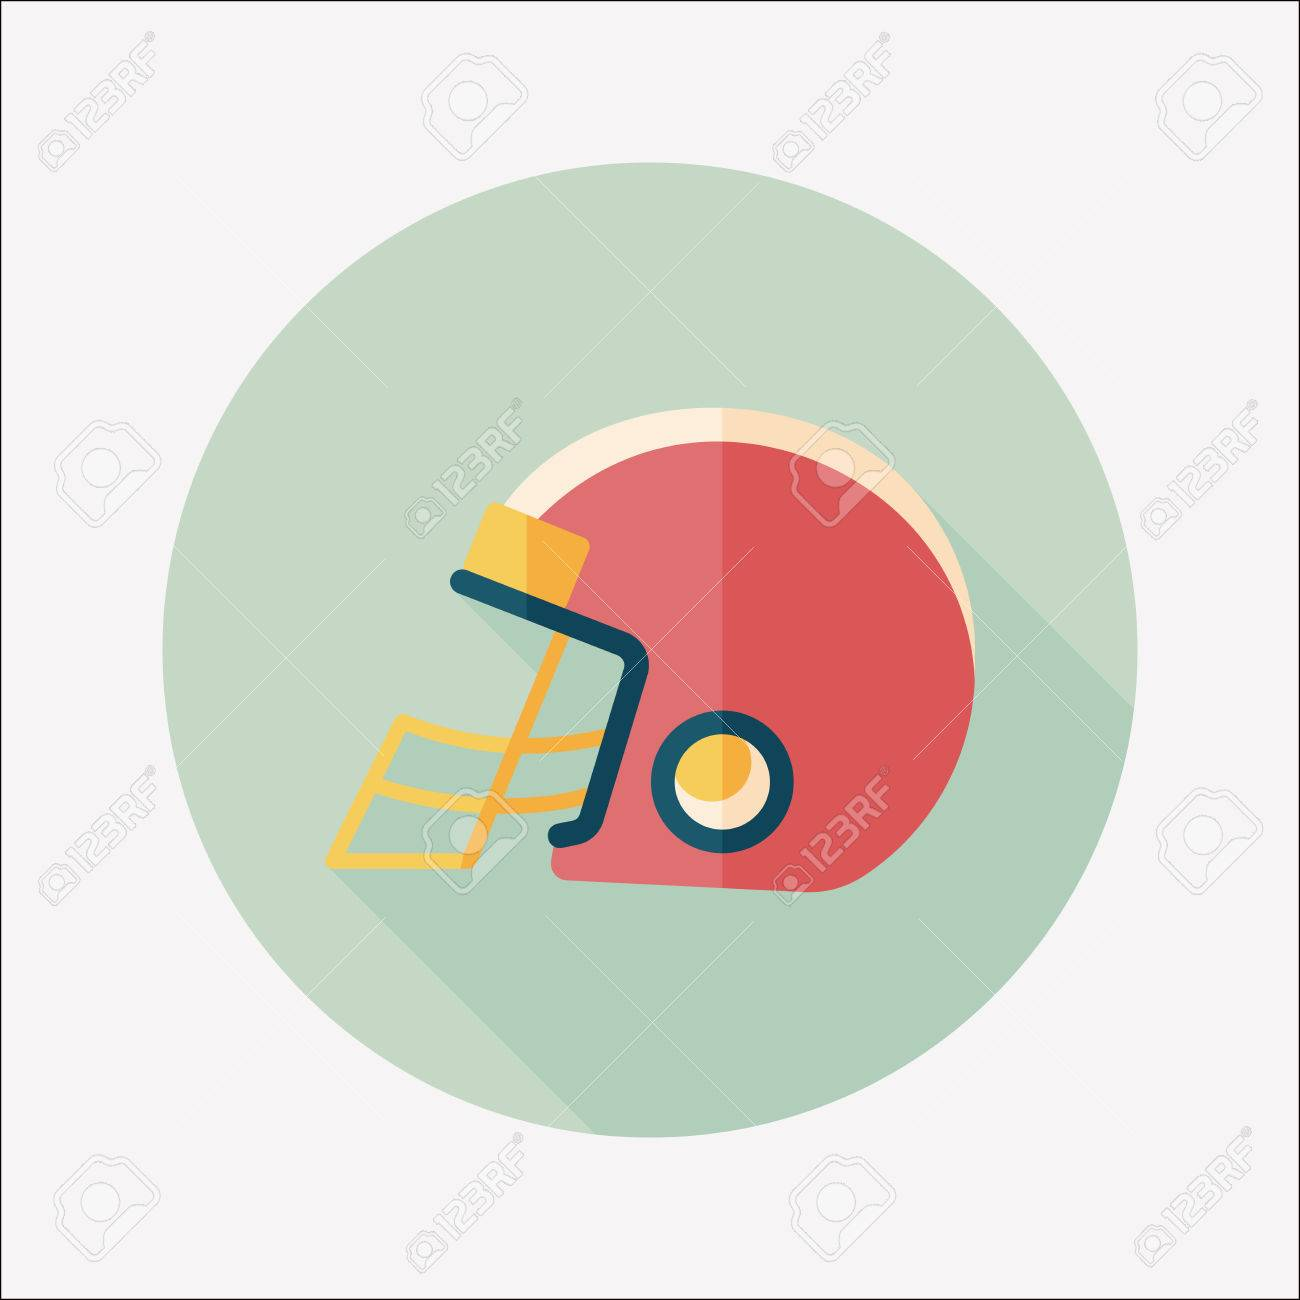 american football helmet flat icon with long shadow royalty free